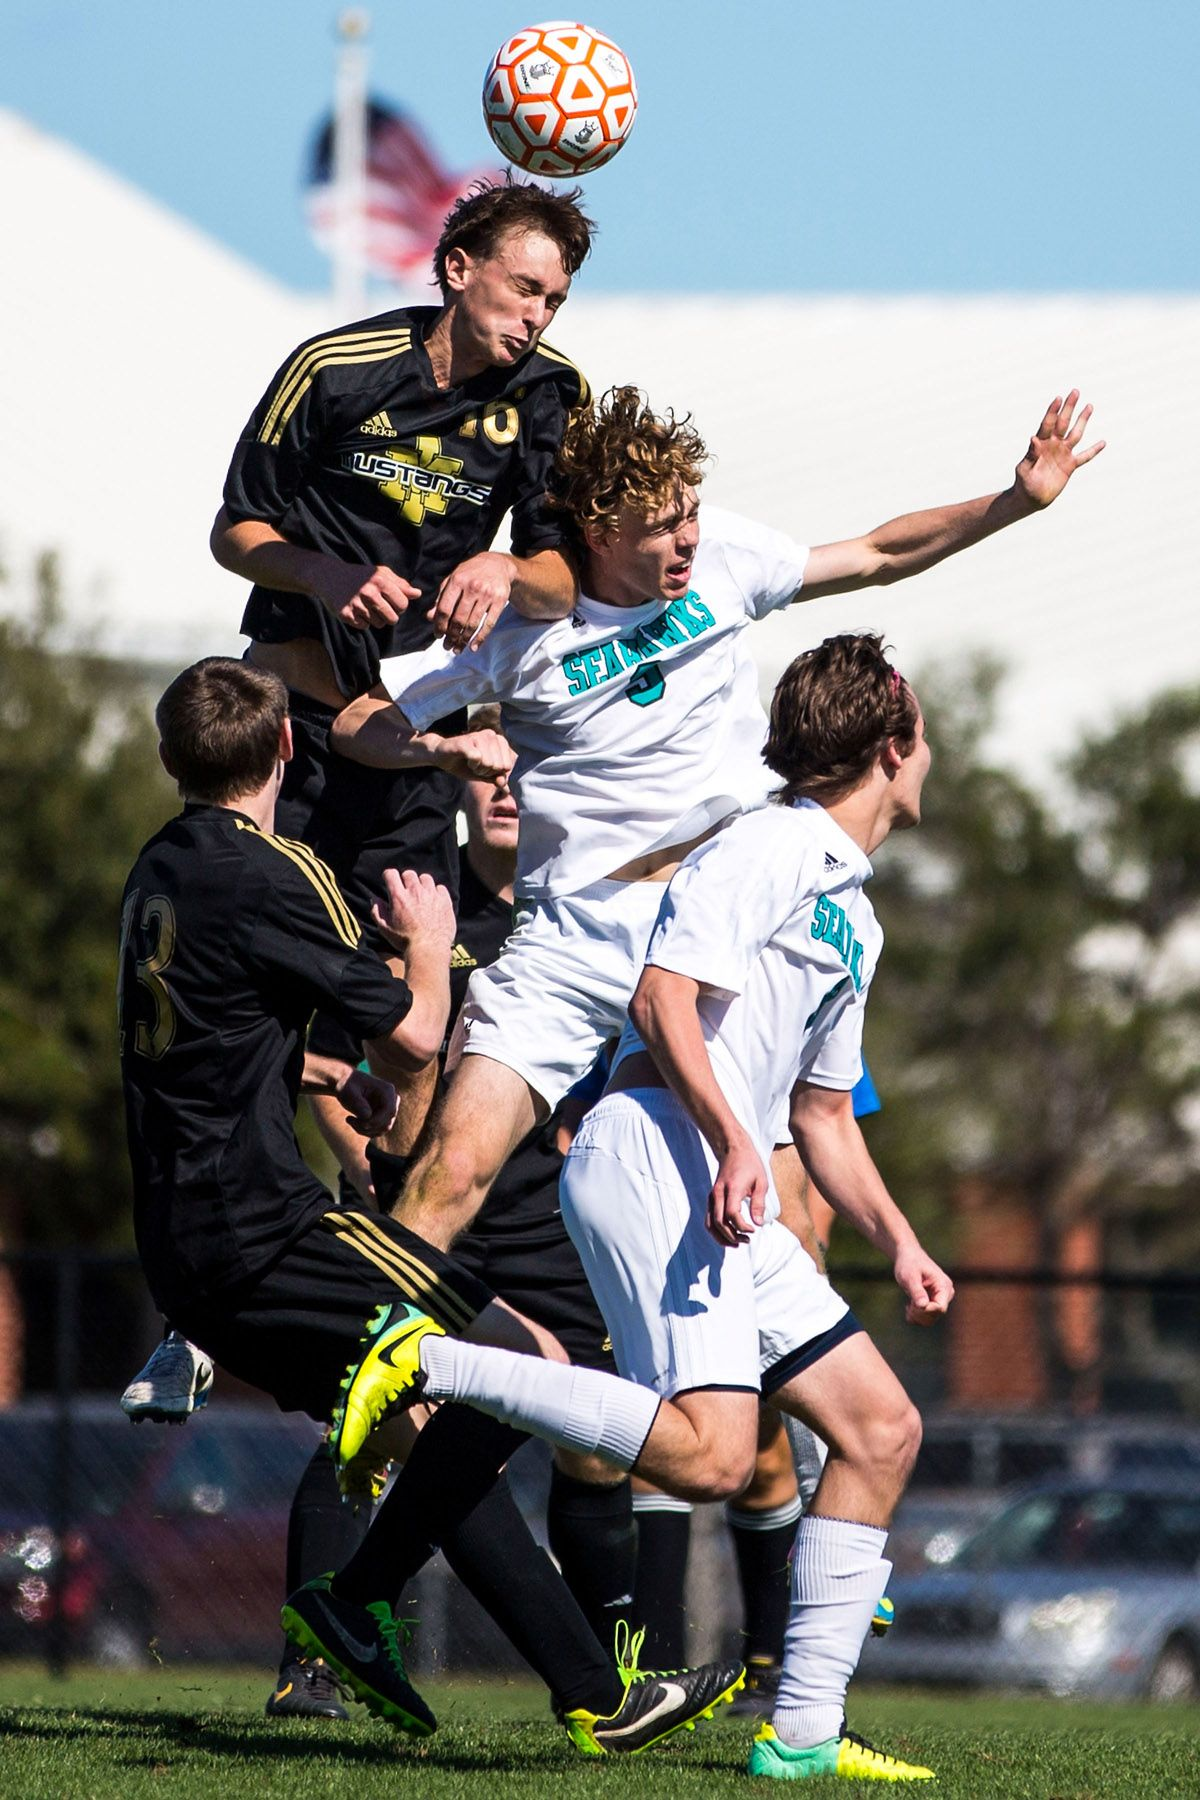 Pin By Kelly Parsons On Clips Soccer Boys Soccer High School Sports